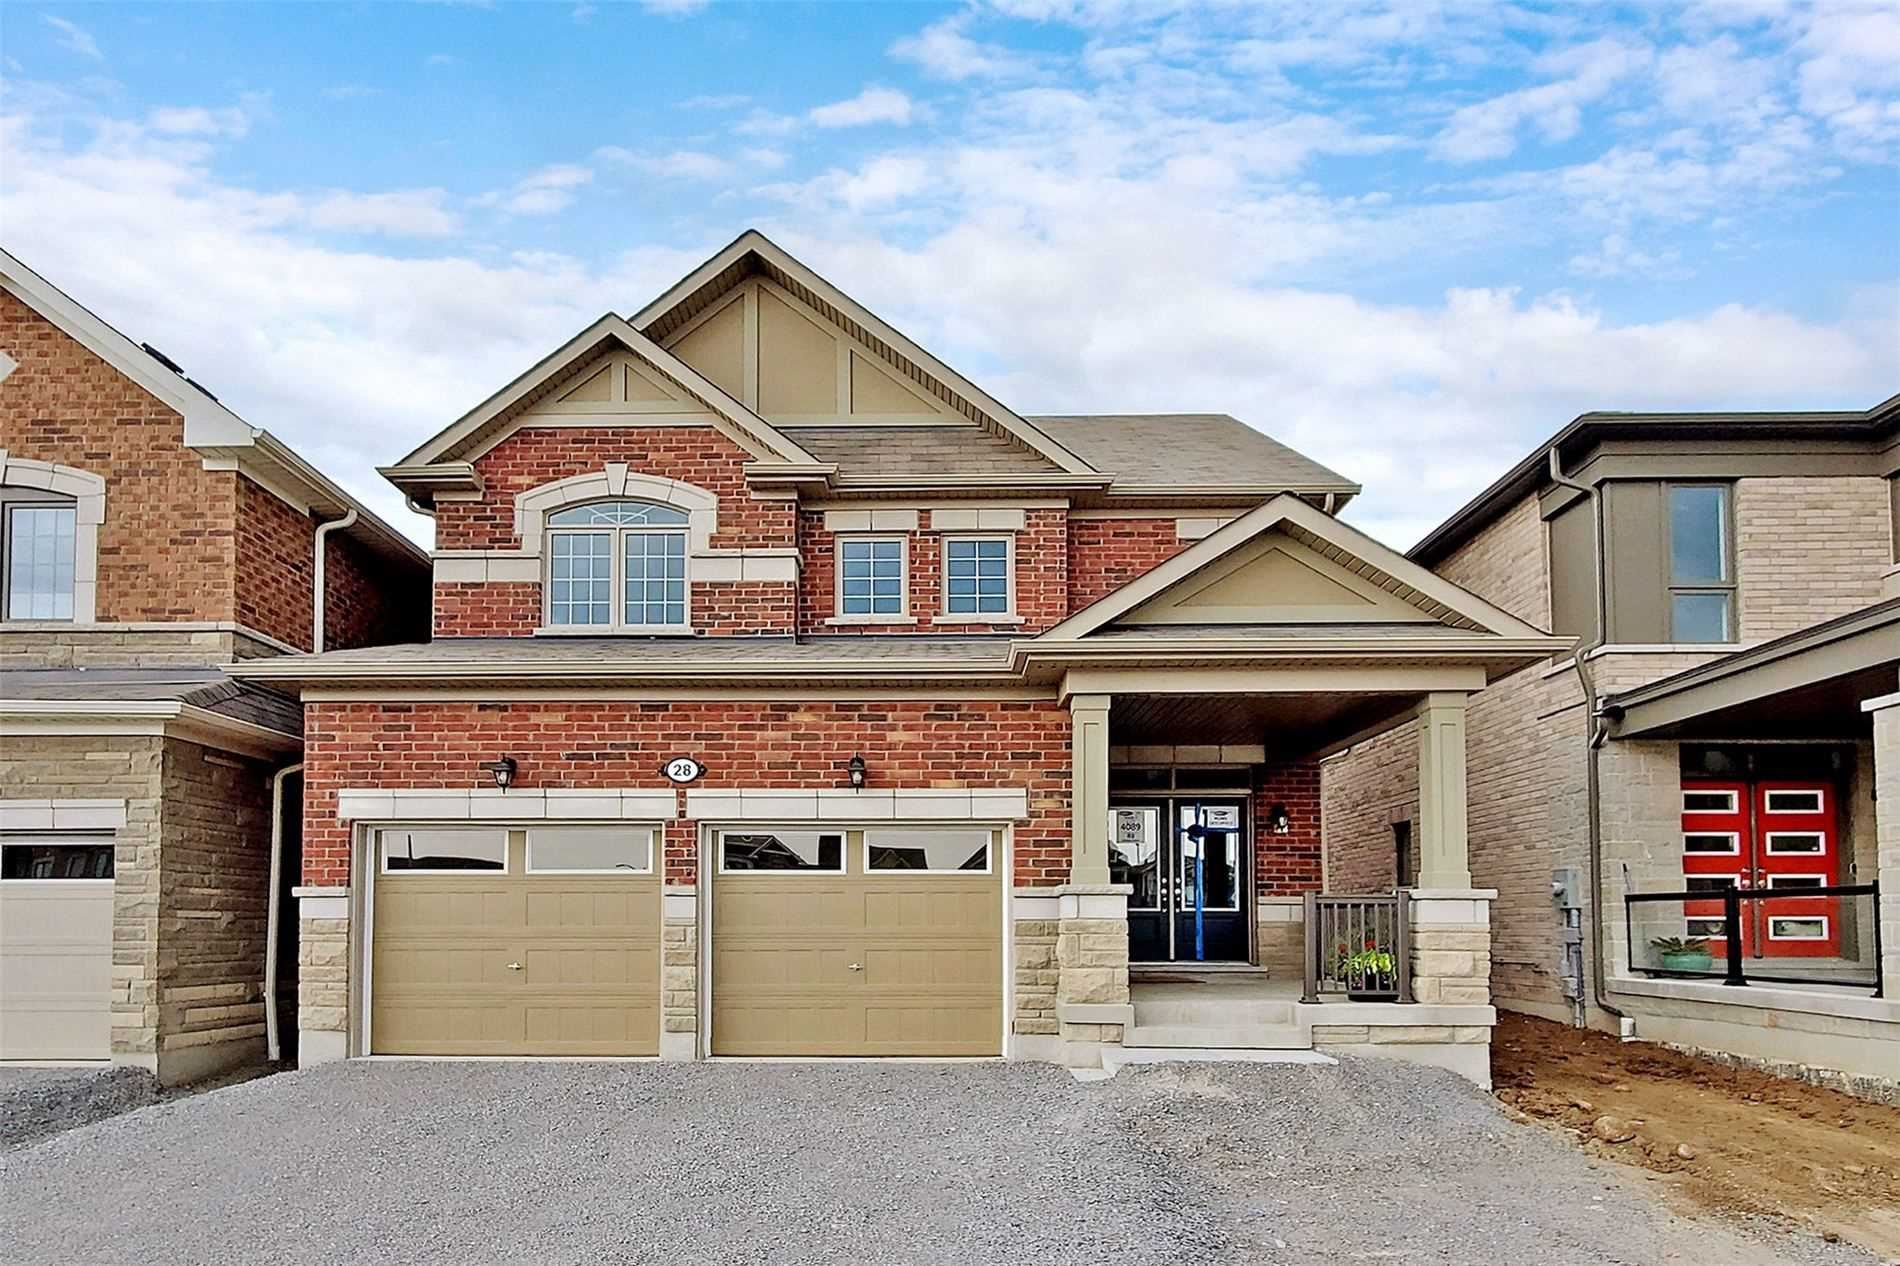 Photo of 28 Broden Cres, Whitby, ON L1P0M1 (MLS # E5322730)